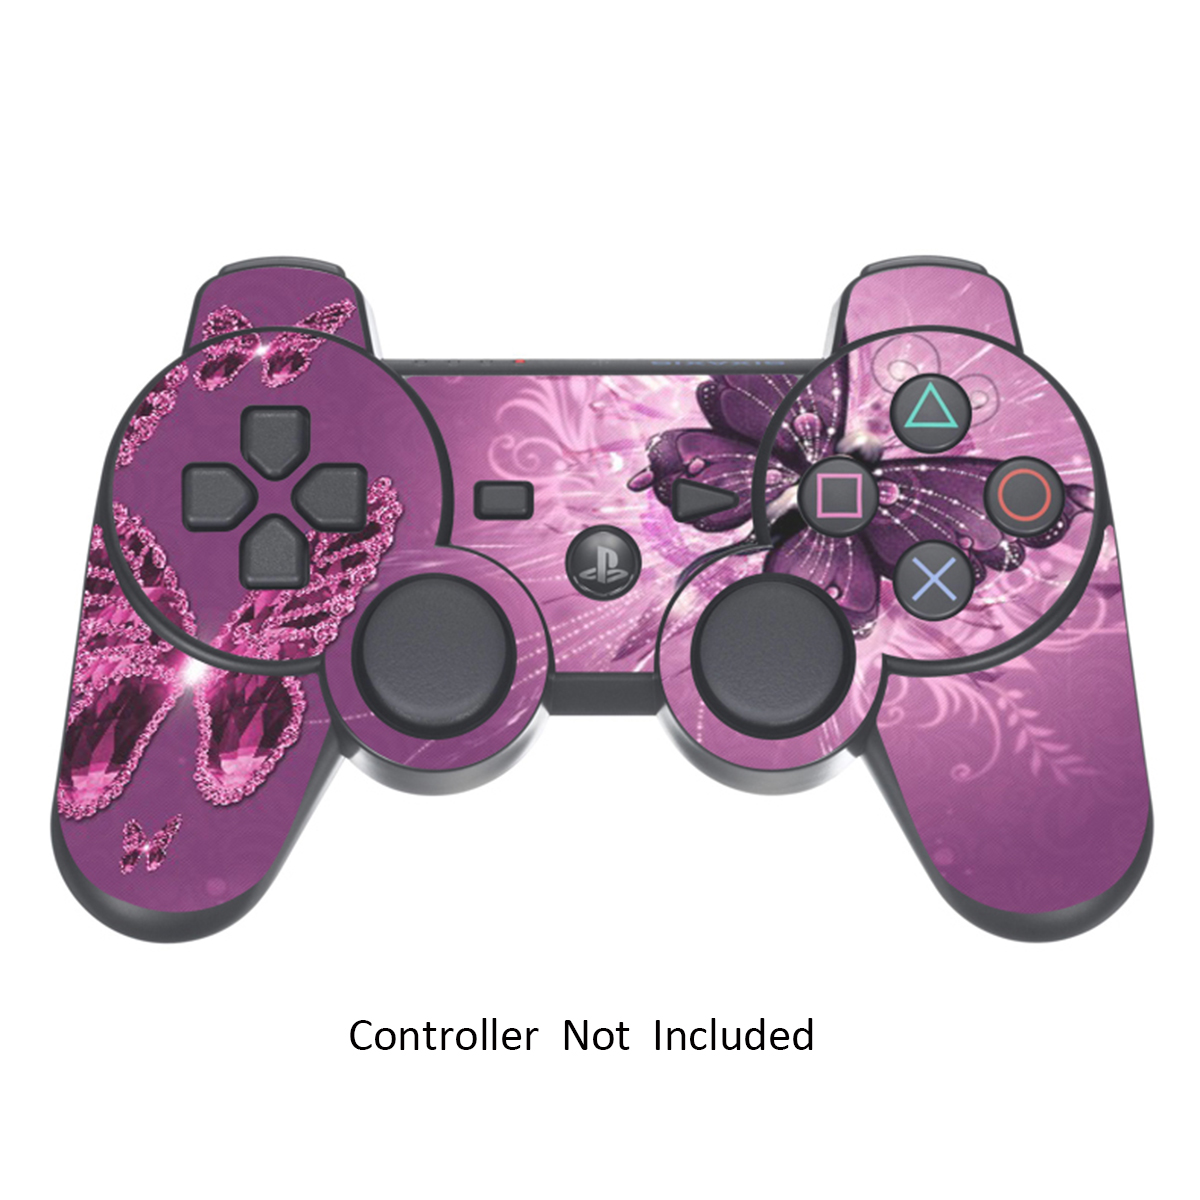 Skin Stickers for Playstation 3 Controller - Vinyl Leather Texture Sticker for DualShock 3 Wireless Game Sixaxis Controllers - Protectors Controller Decal - Lavender Butterfies